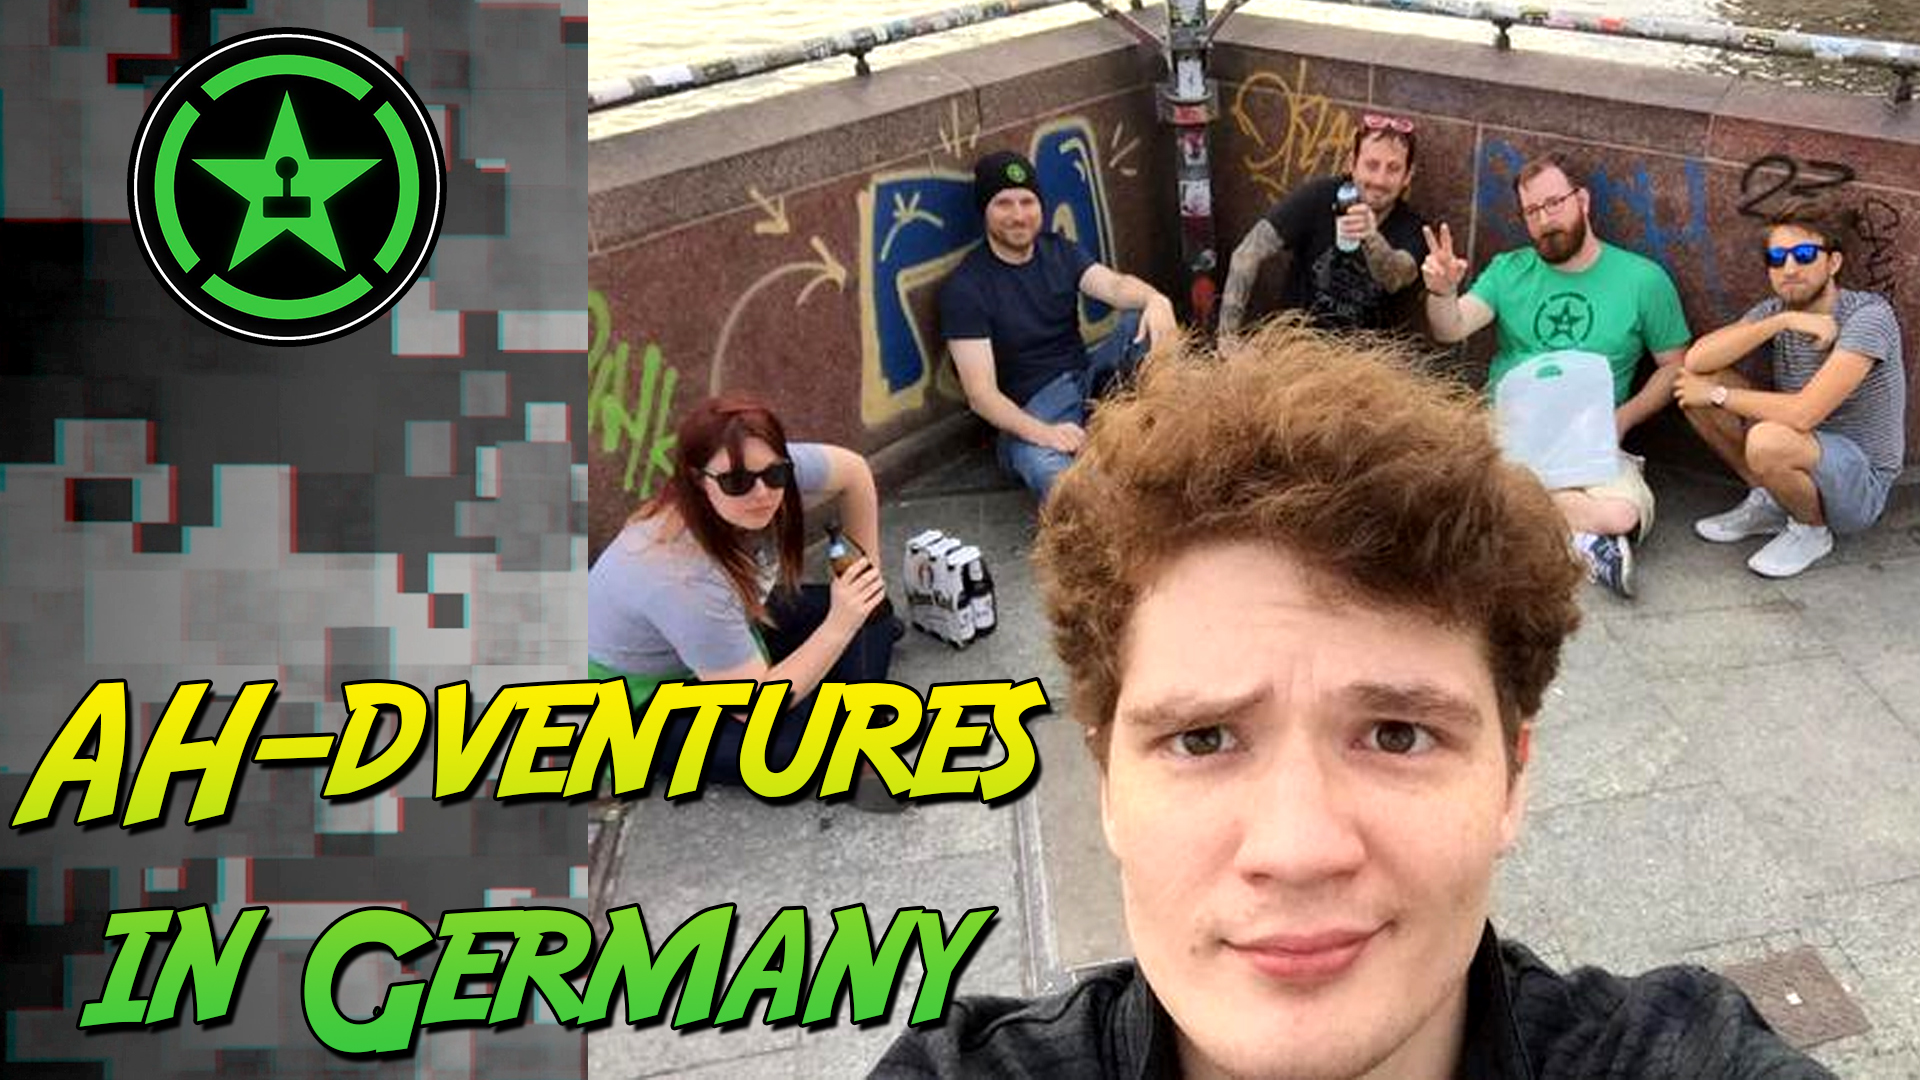 Ah-dventures in germany thumbnail.jpg